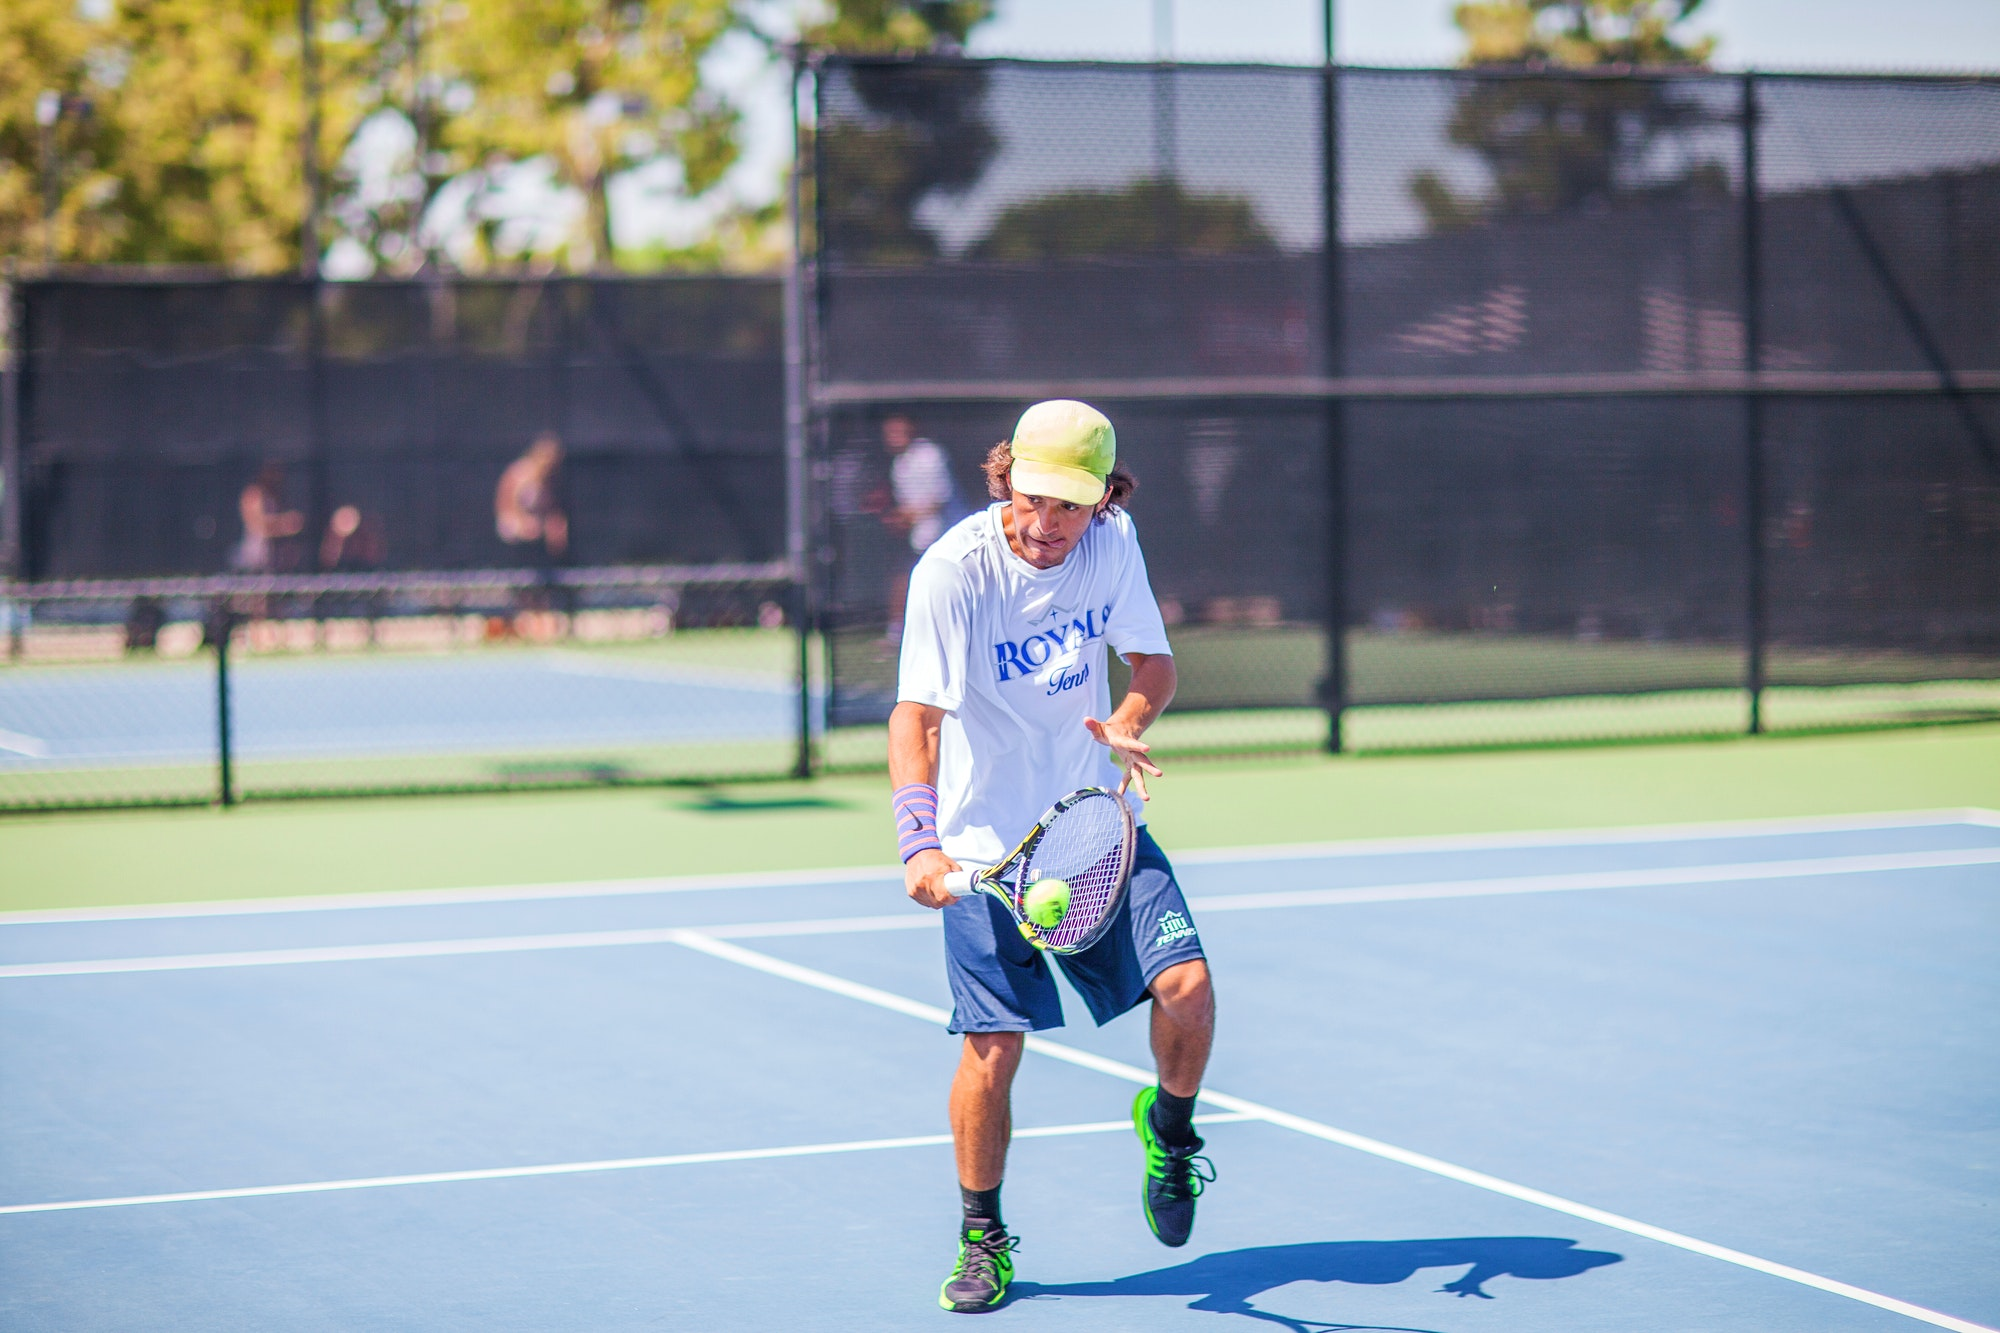 Mauricio M. teaches tennis lessons in Fullerton, CA